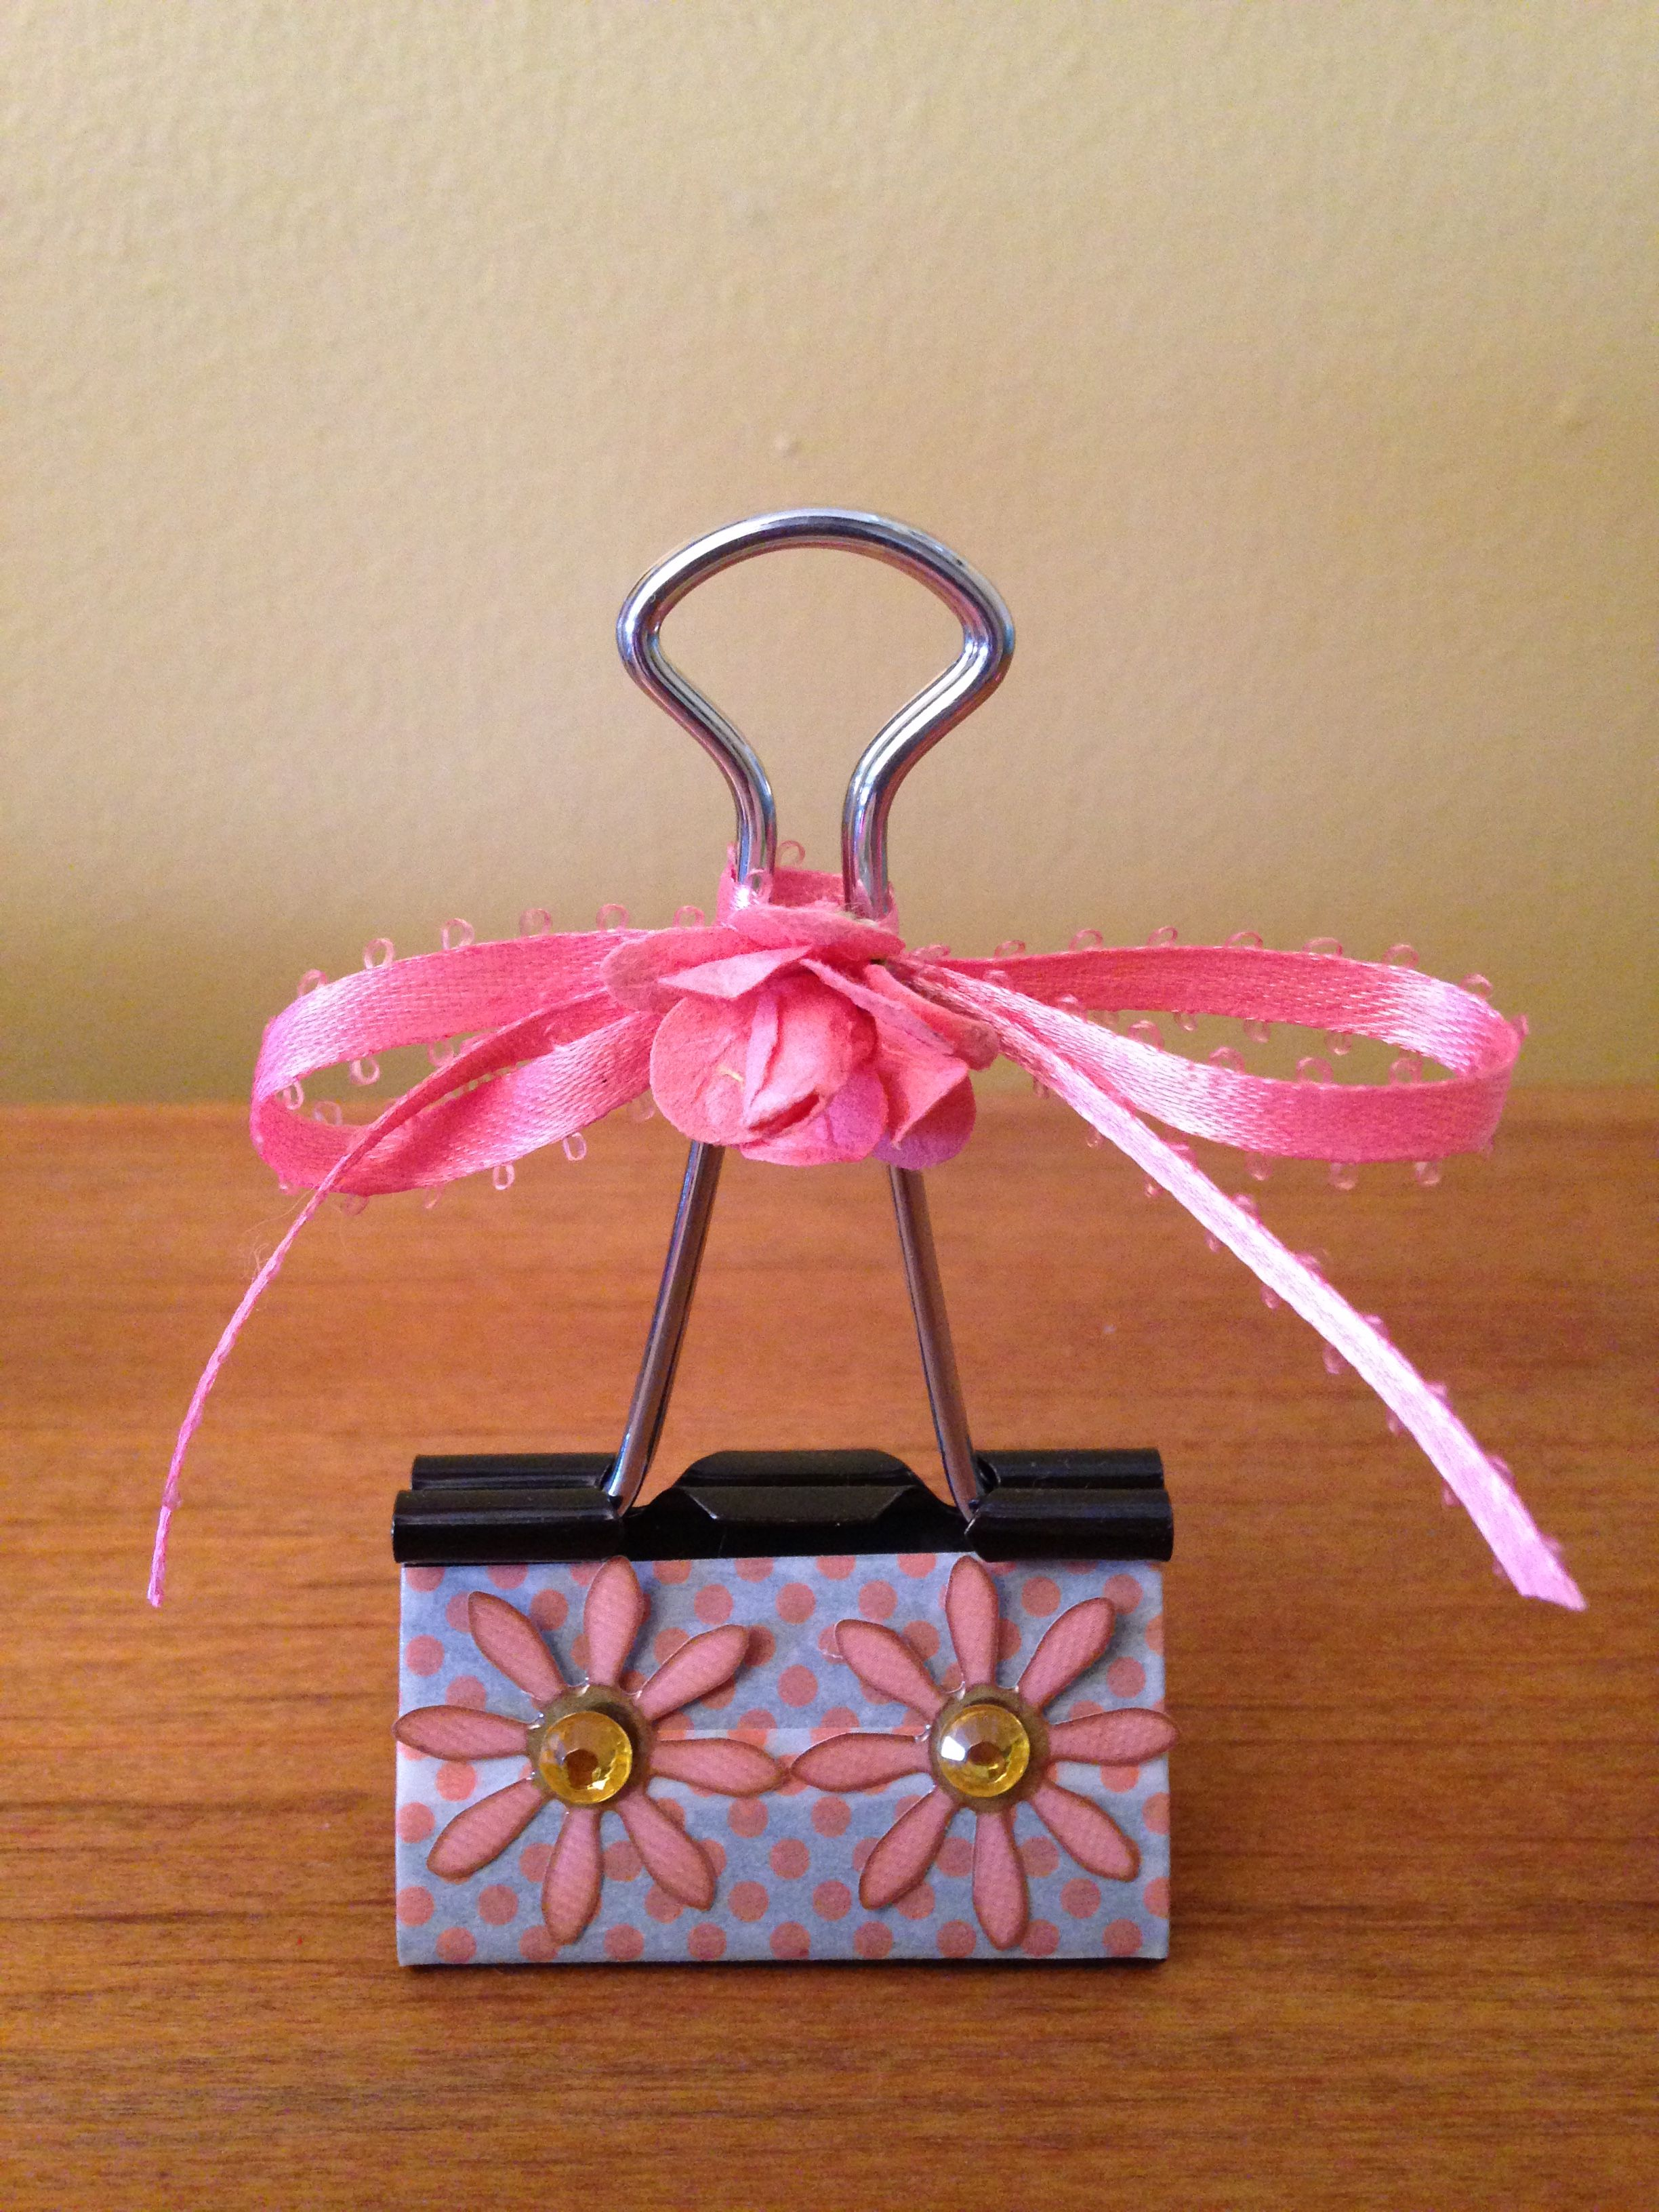 Pin by Frannie on Binder Clips Crafts, Paper clips diy